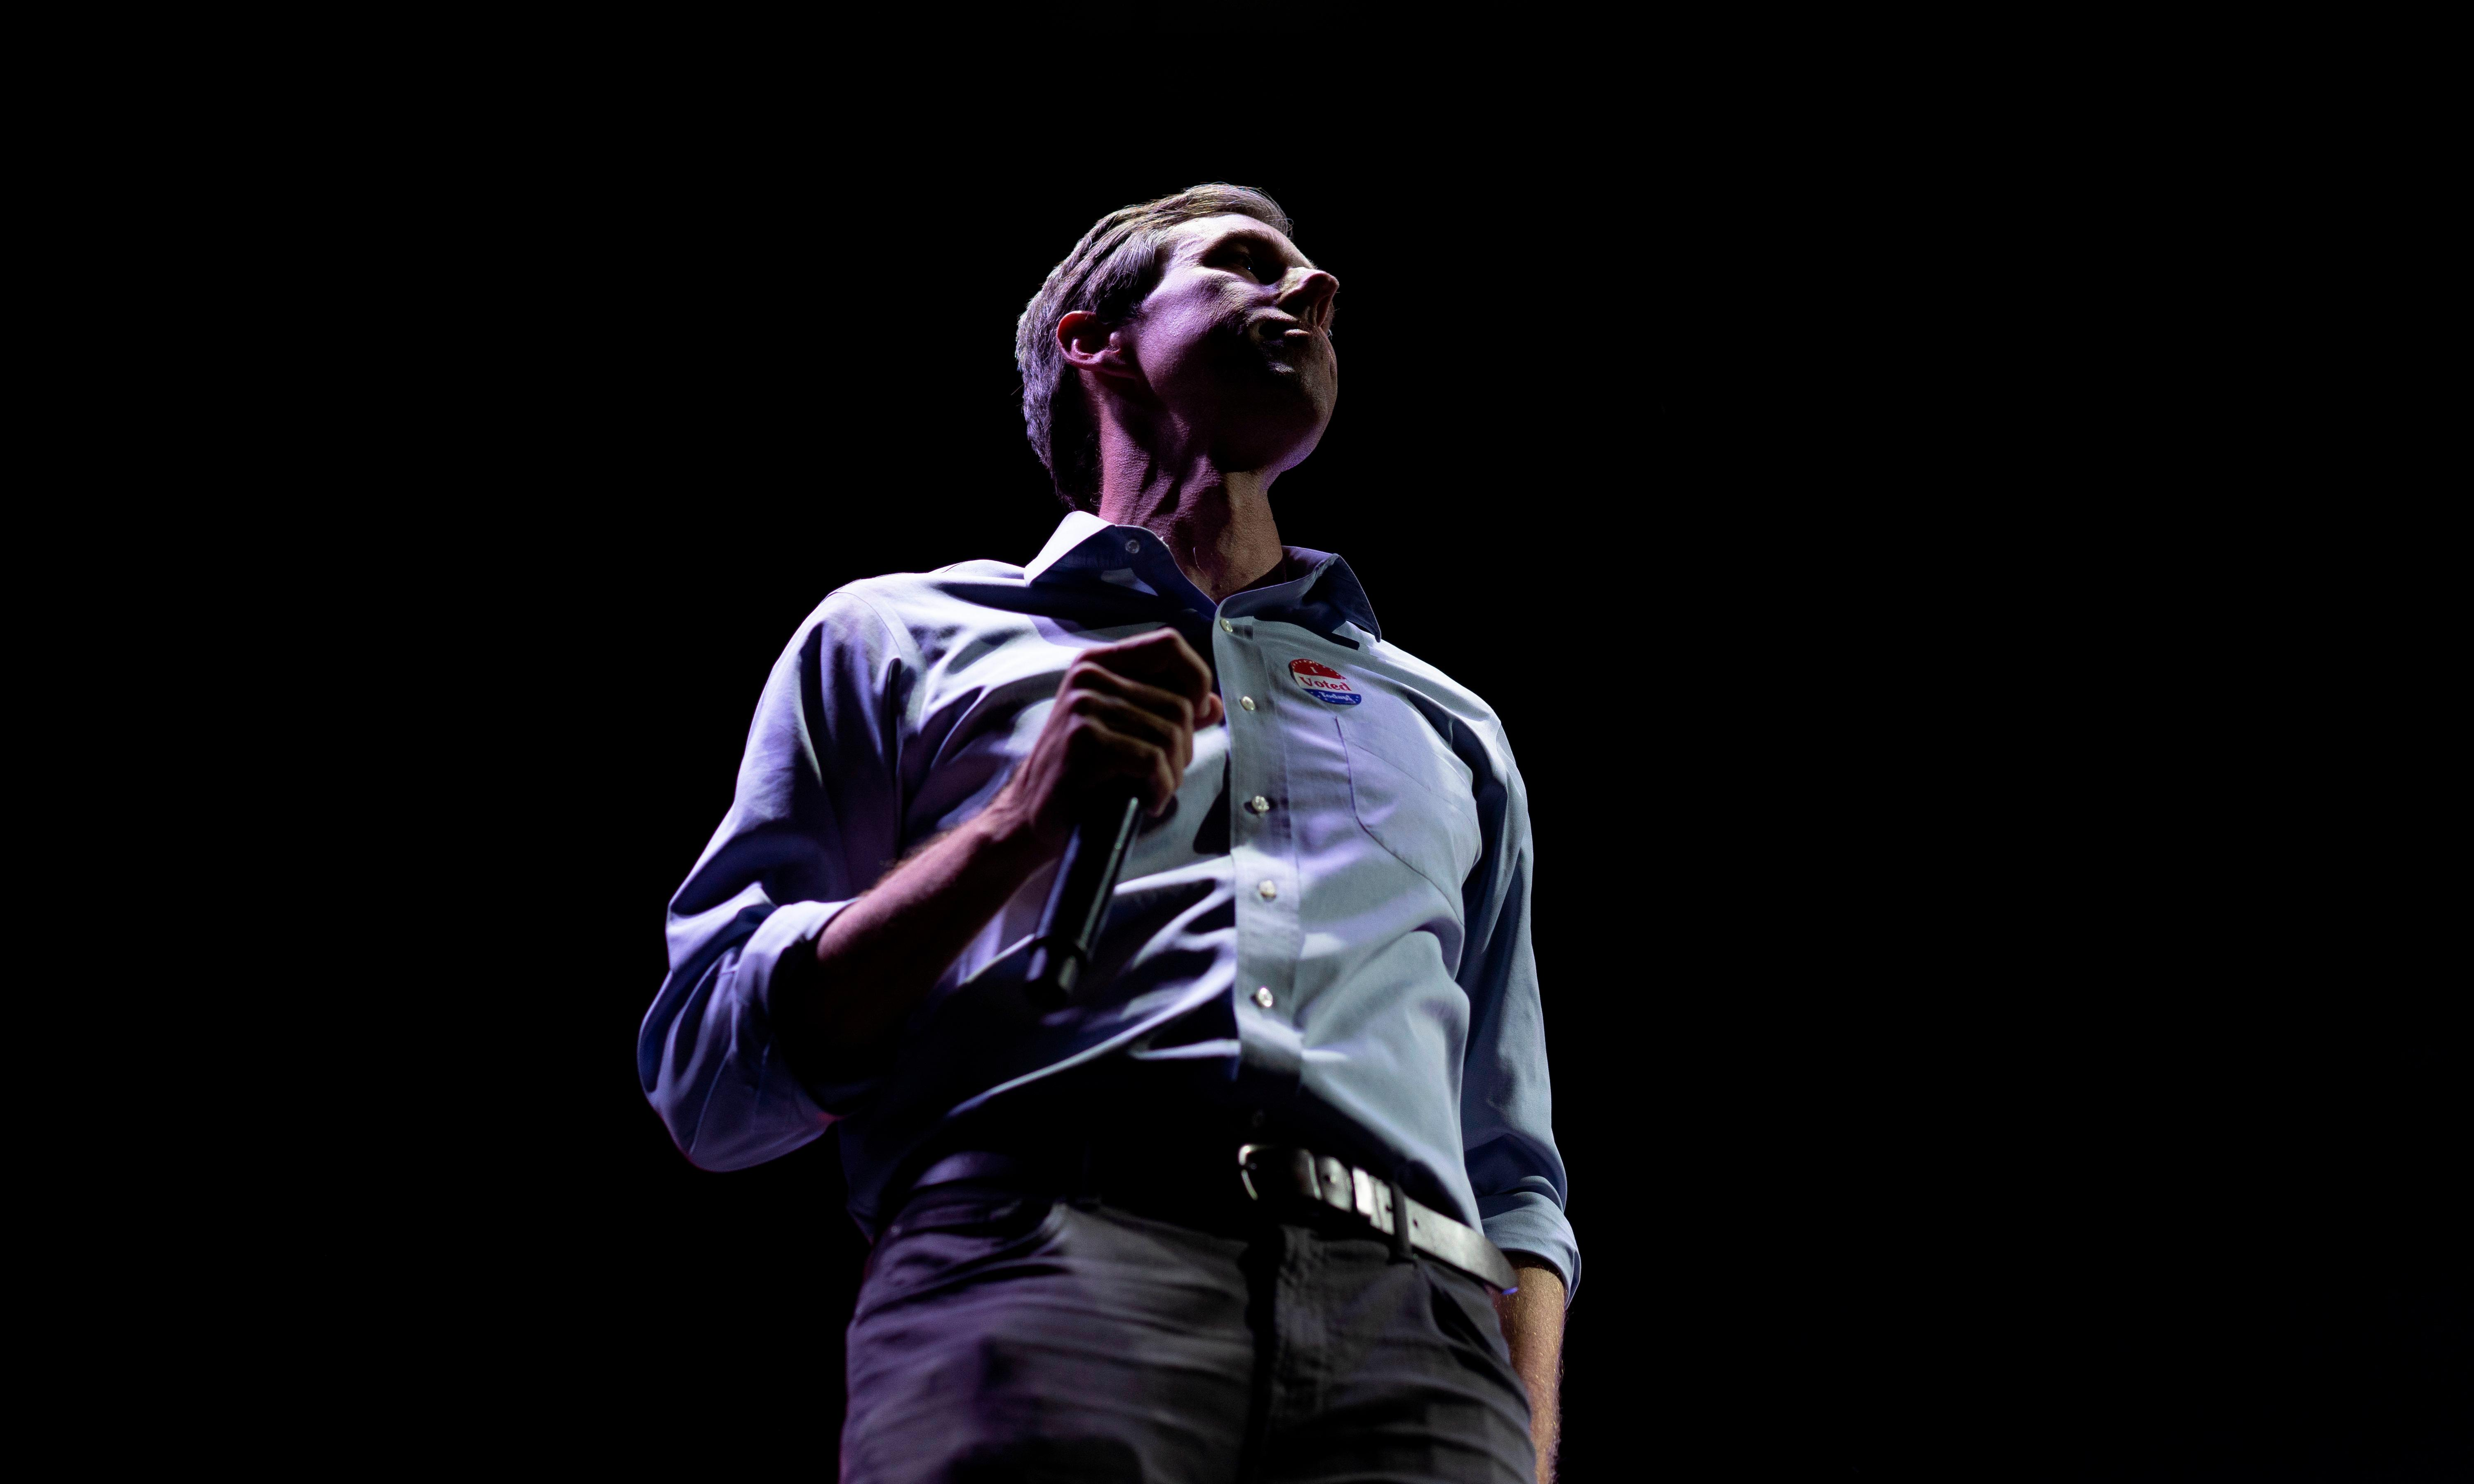 Beto O'Rourke's biggest blind spot cost him Texas. Democrats, take note